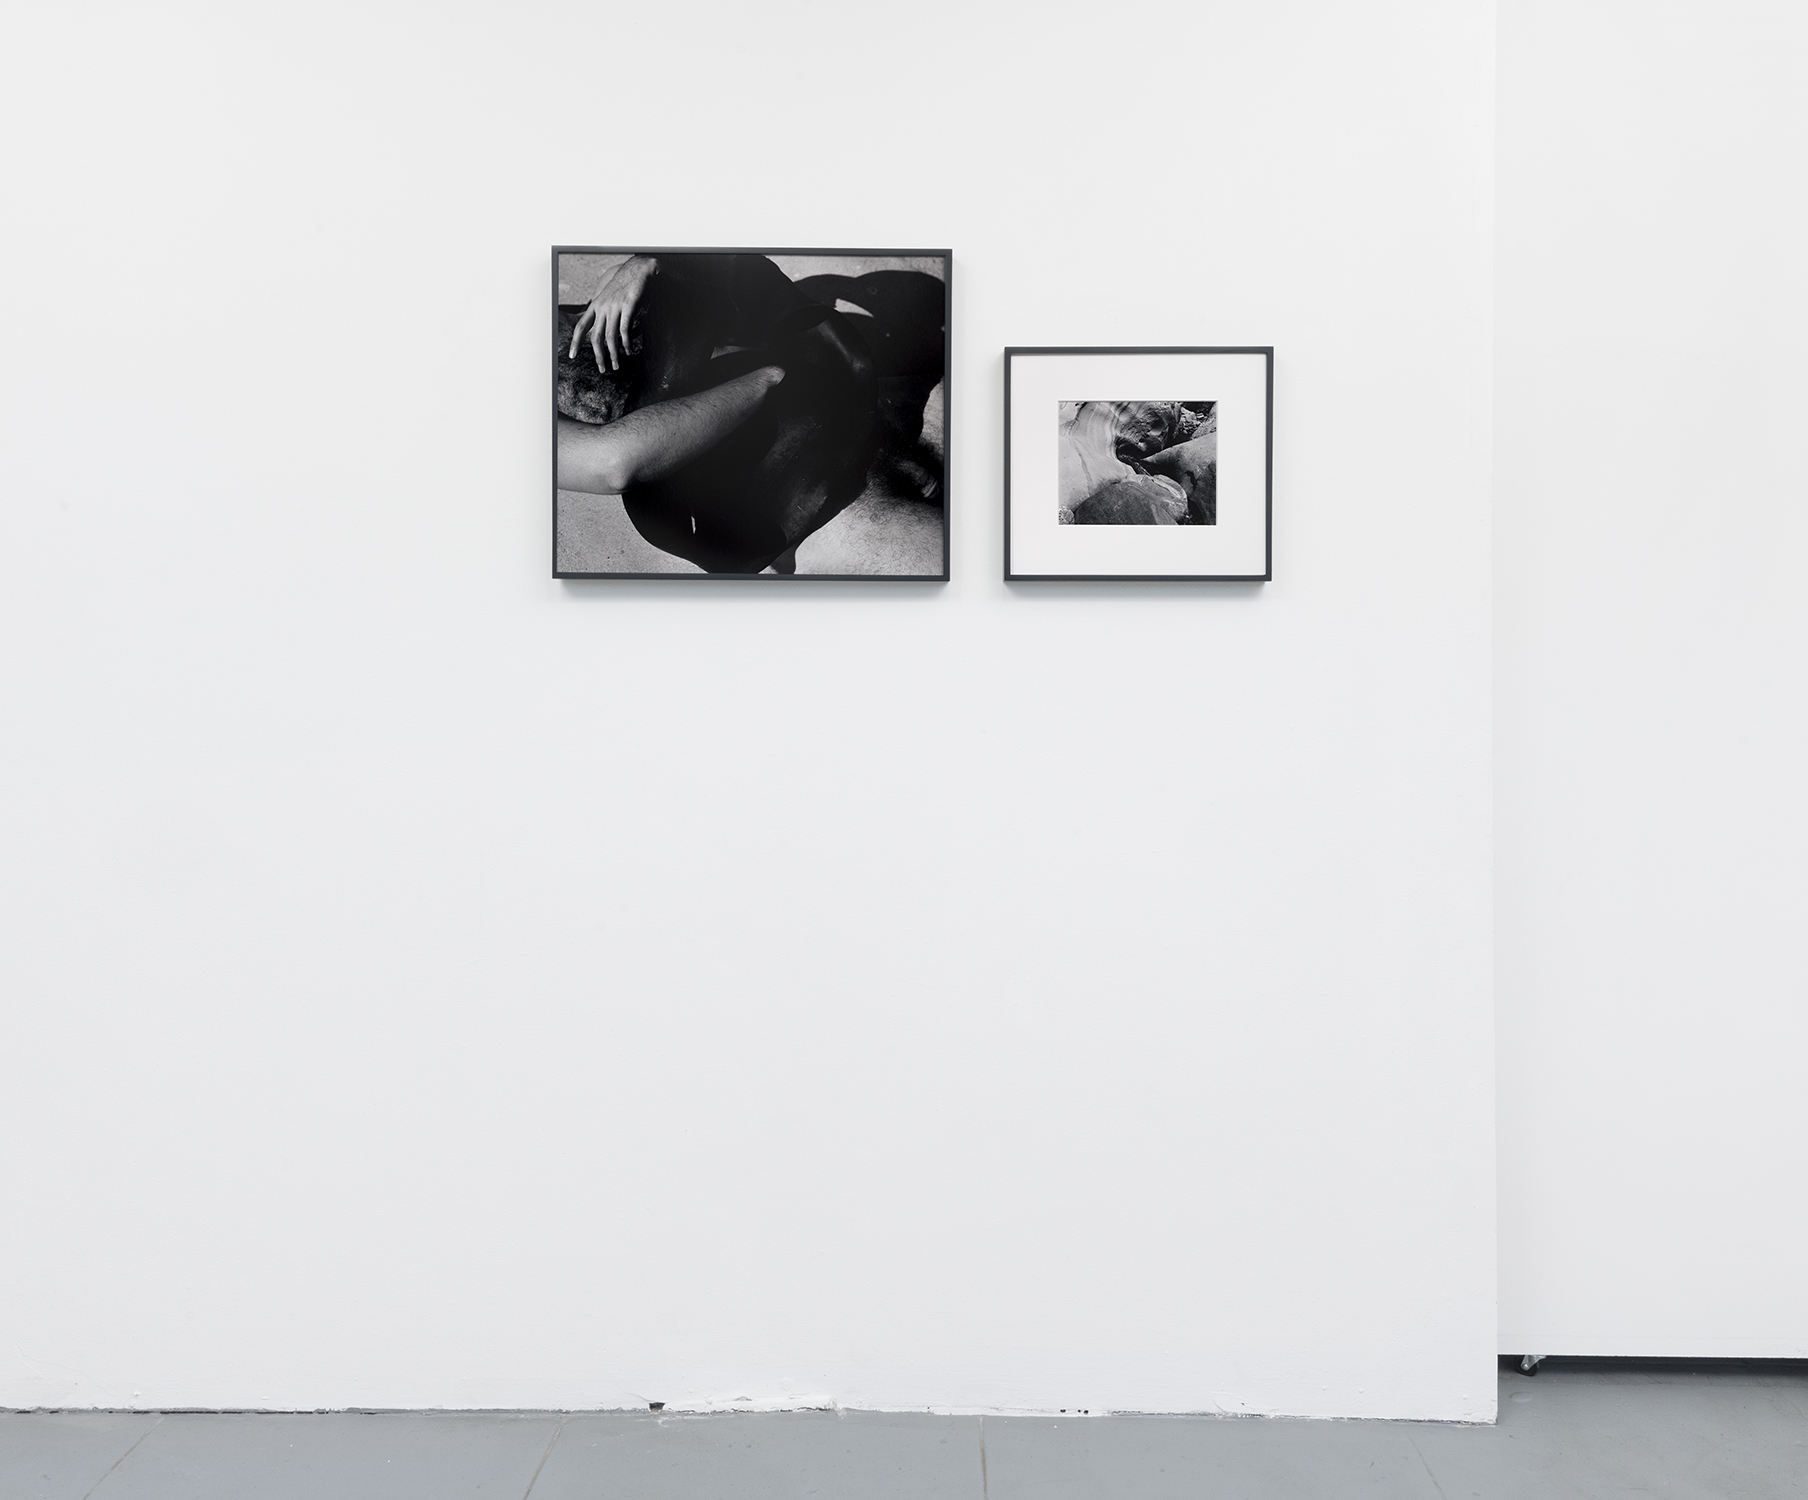 Installation view. L: Untitled, 19 x 23,selenium toned, silver gelatin print in painted wood frame, 2018.R: Untitled (Water Swirl),  8 x 10 inch selenium toned, silver gelatin print in 8 ply over-mat (13.5 x 15.5),painted wood frame, 2018